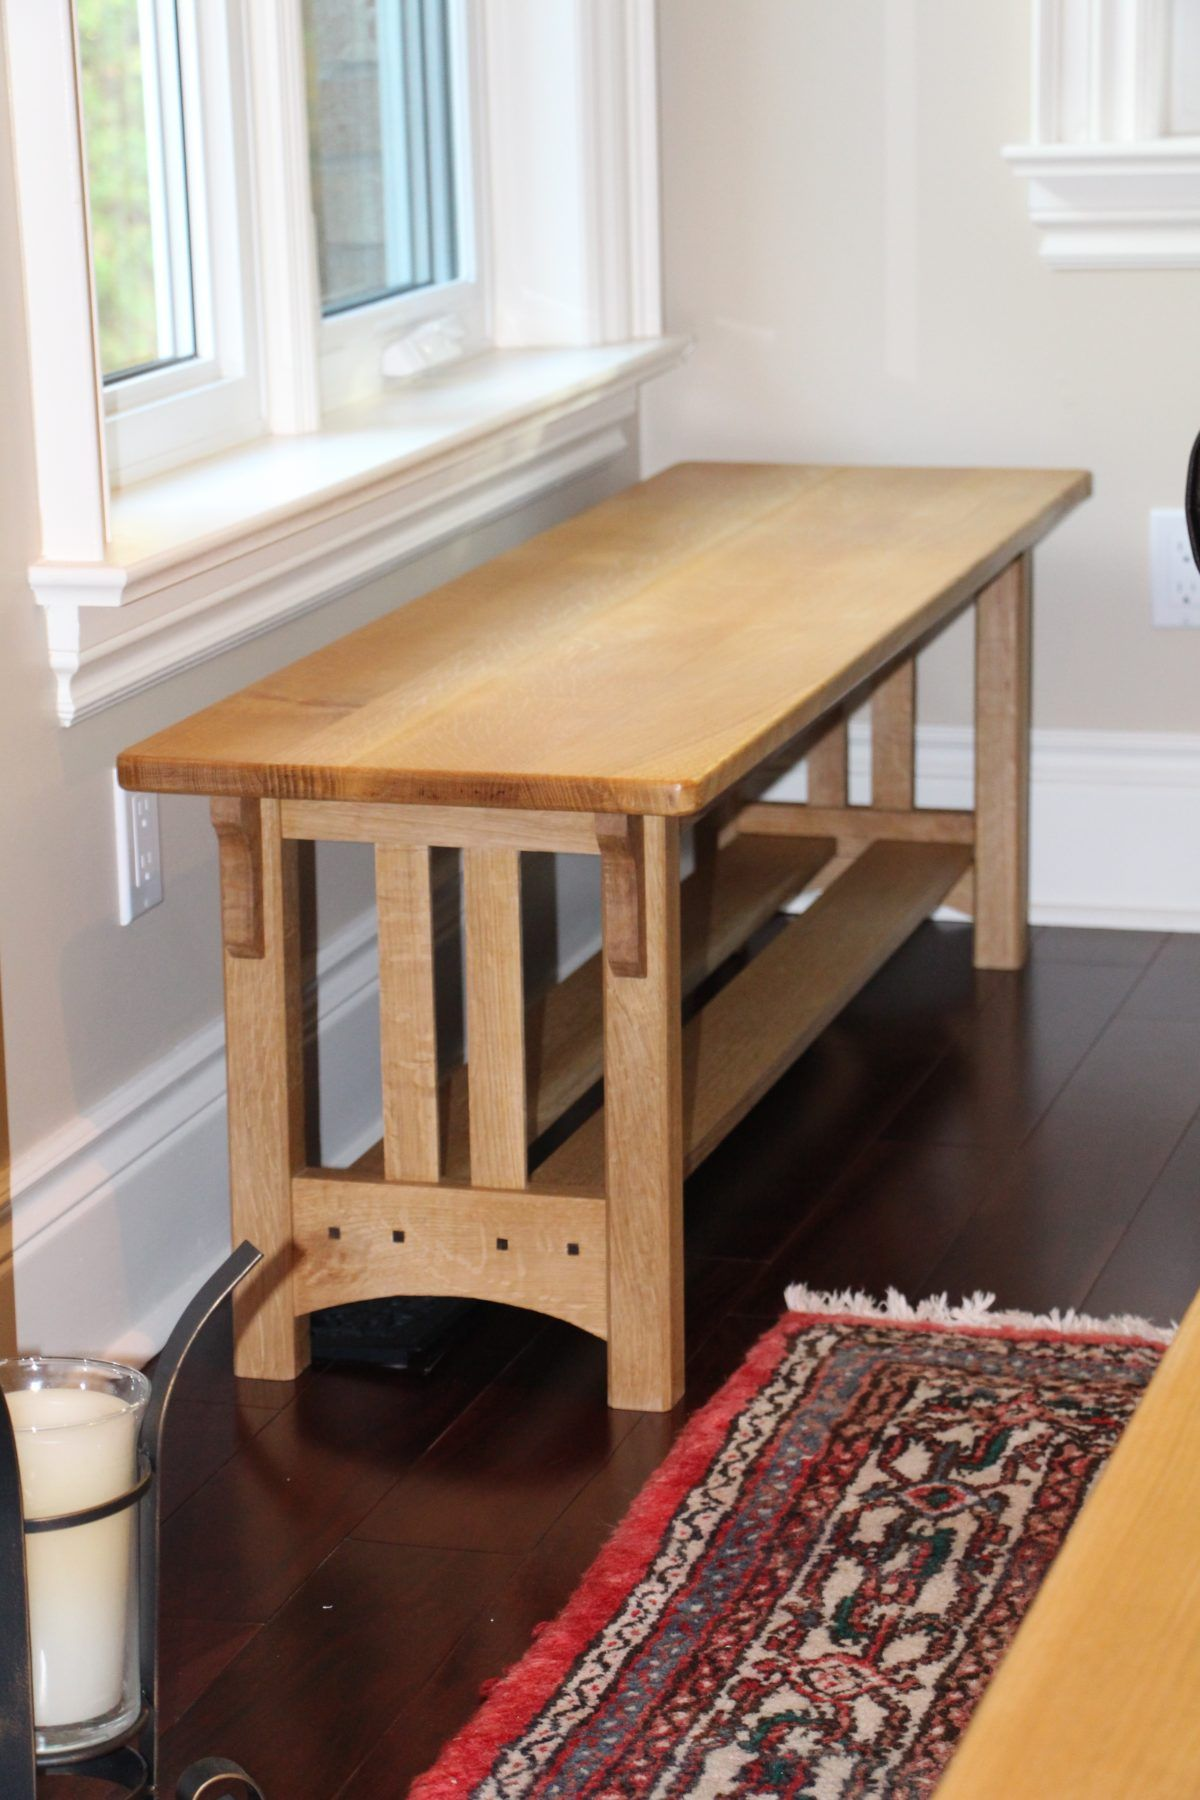 A set of 3 tables custom built to suit a client's needs.